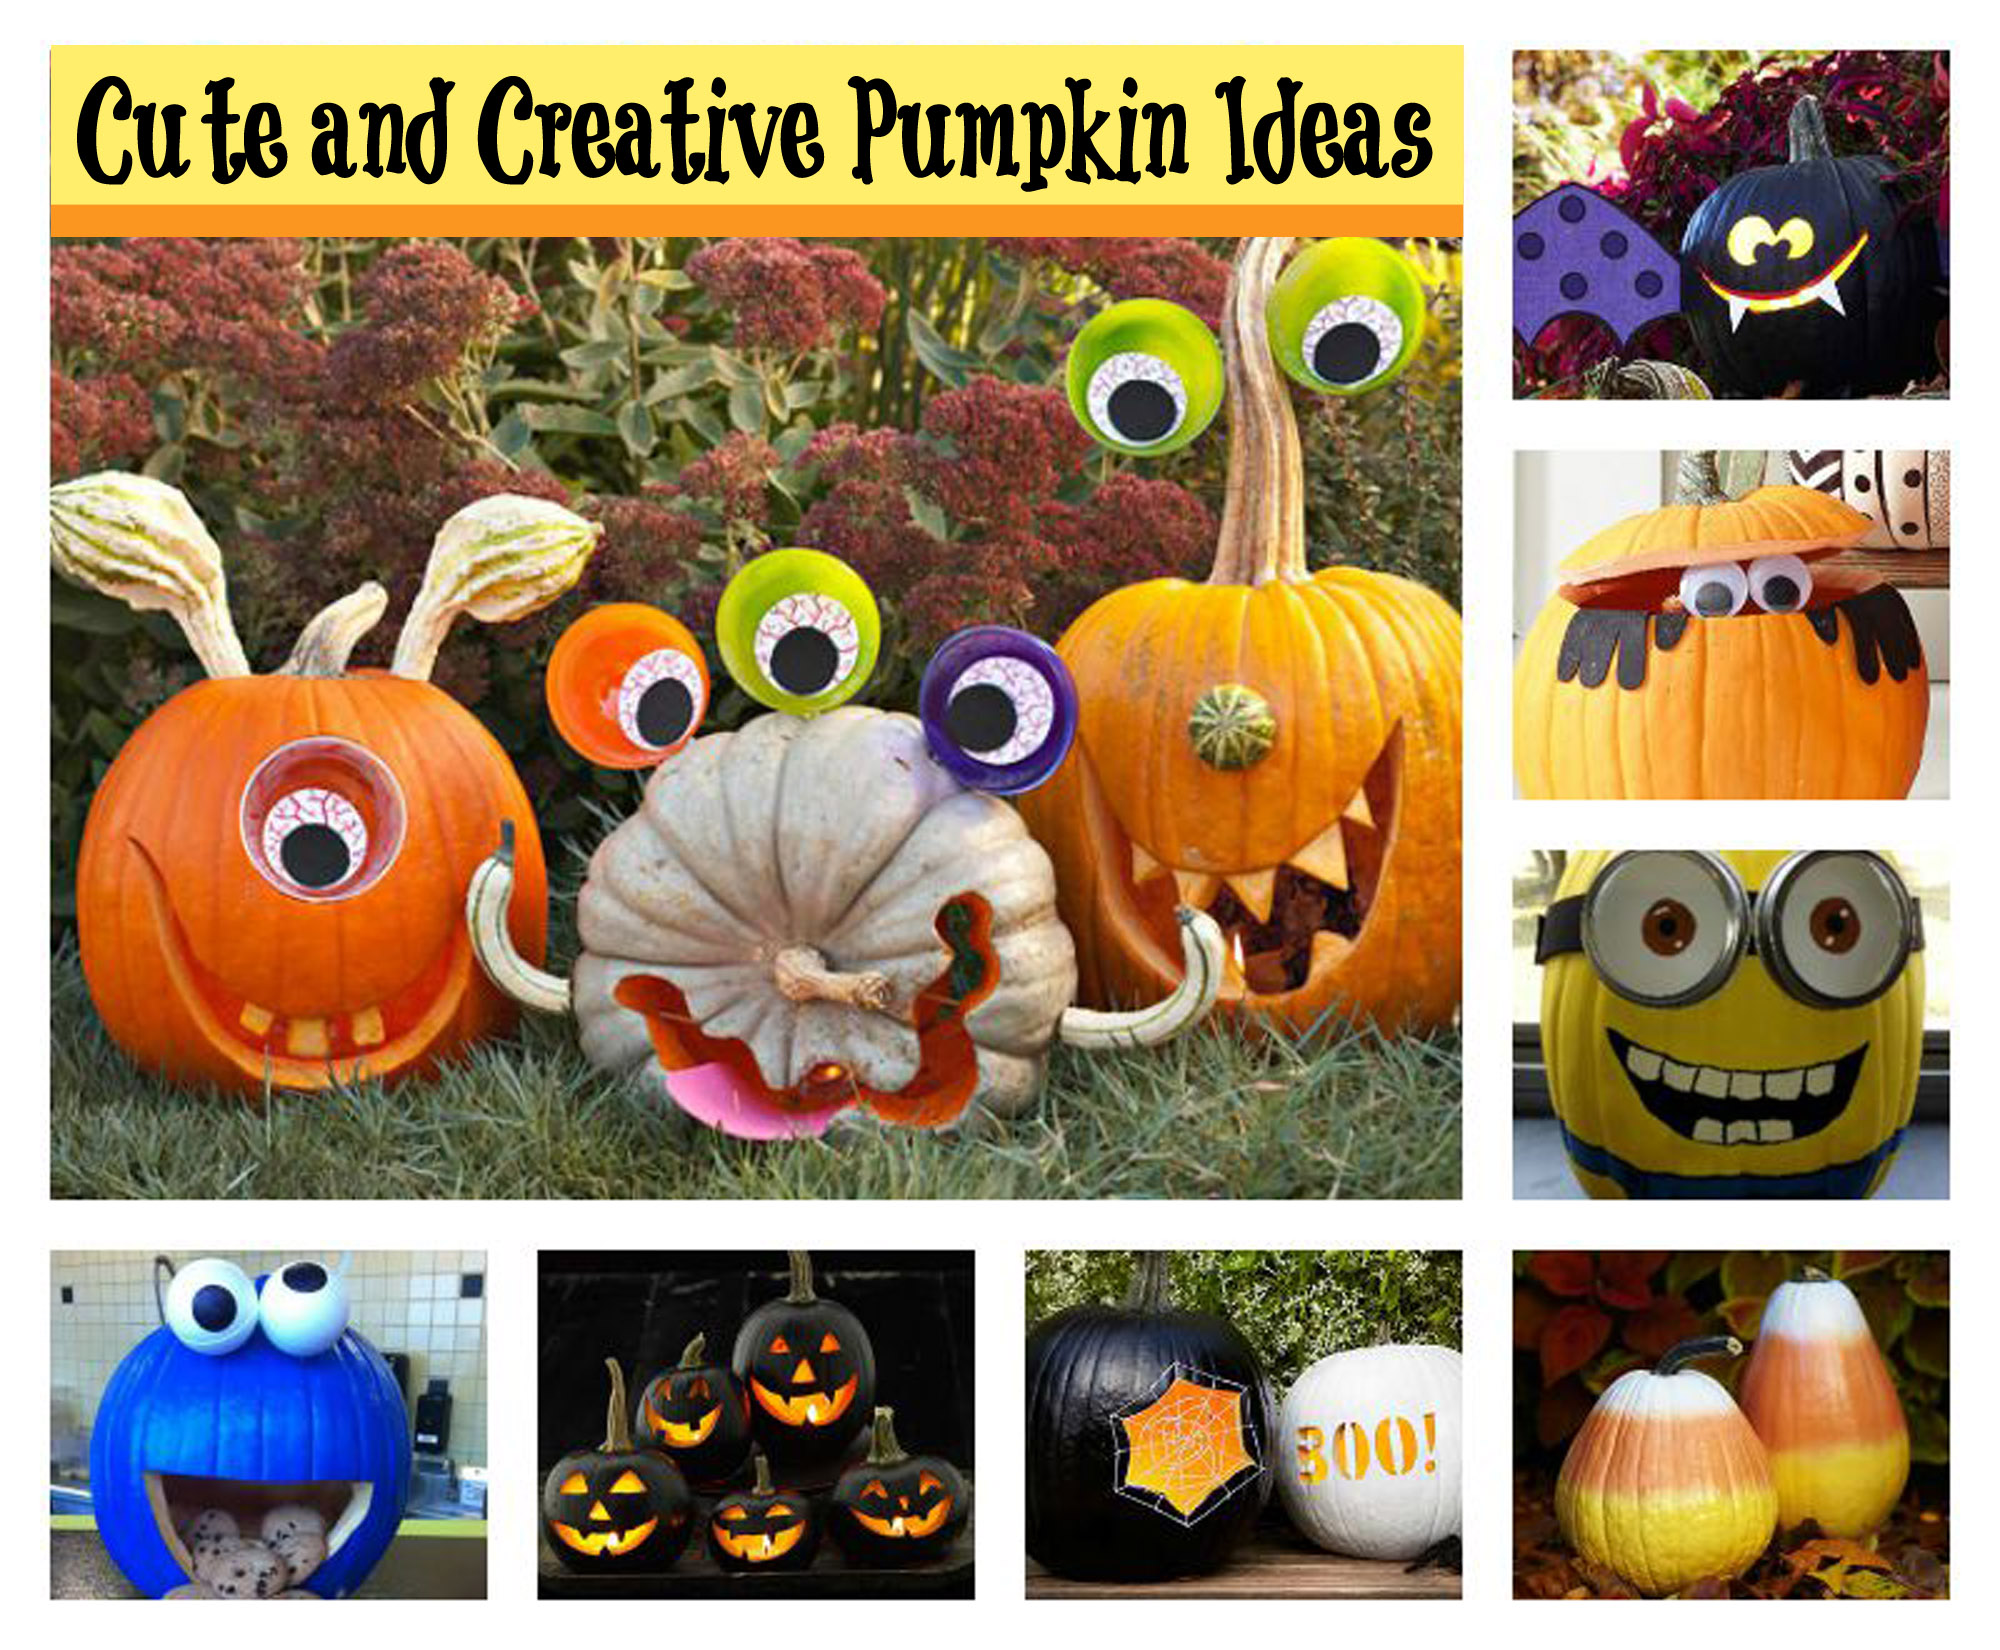 Cute and Creative Pumpkin Ideas